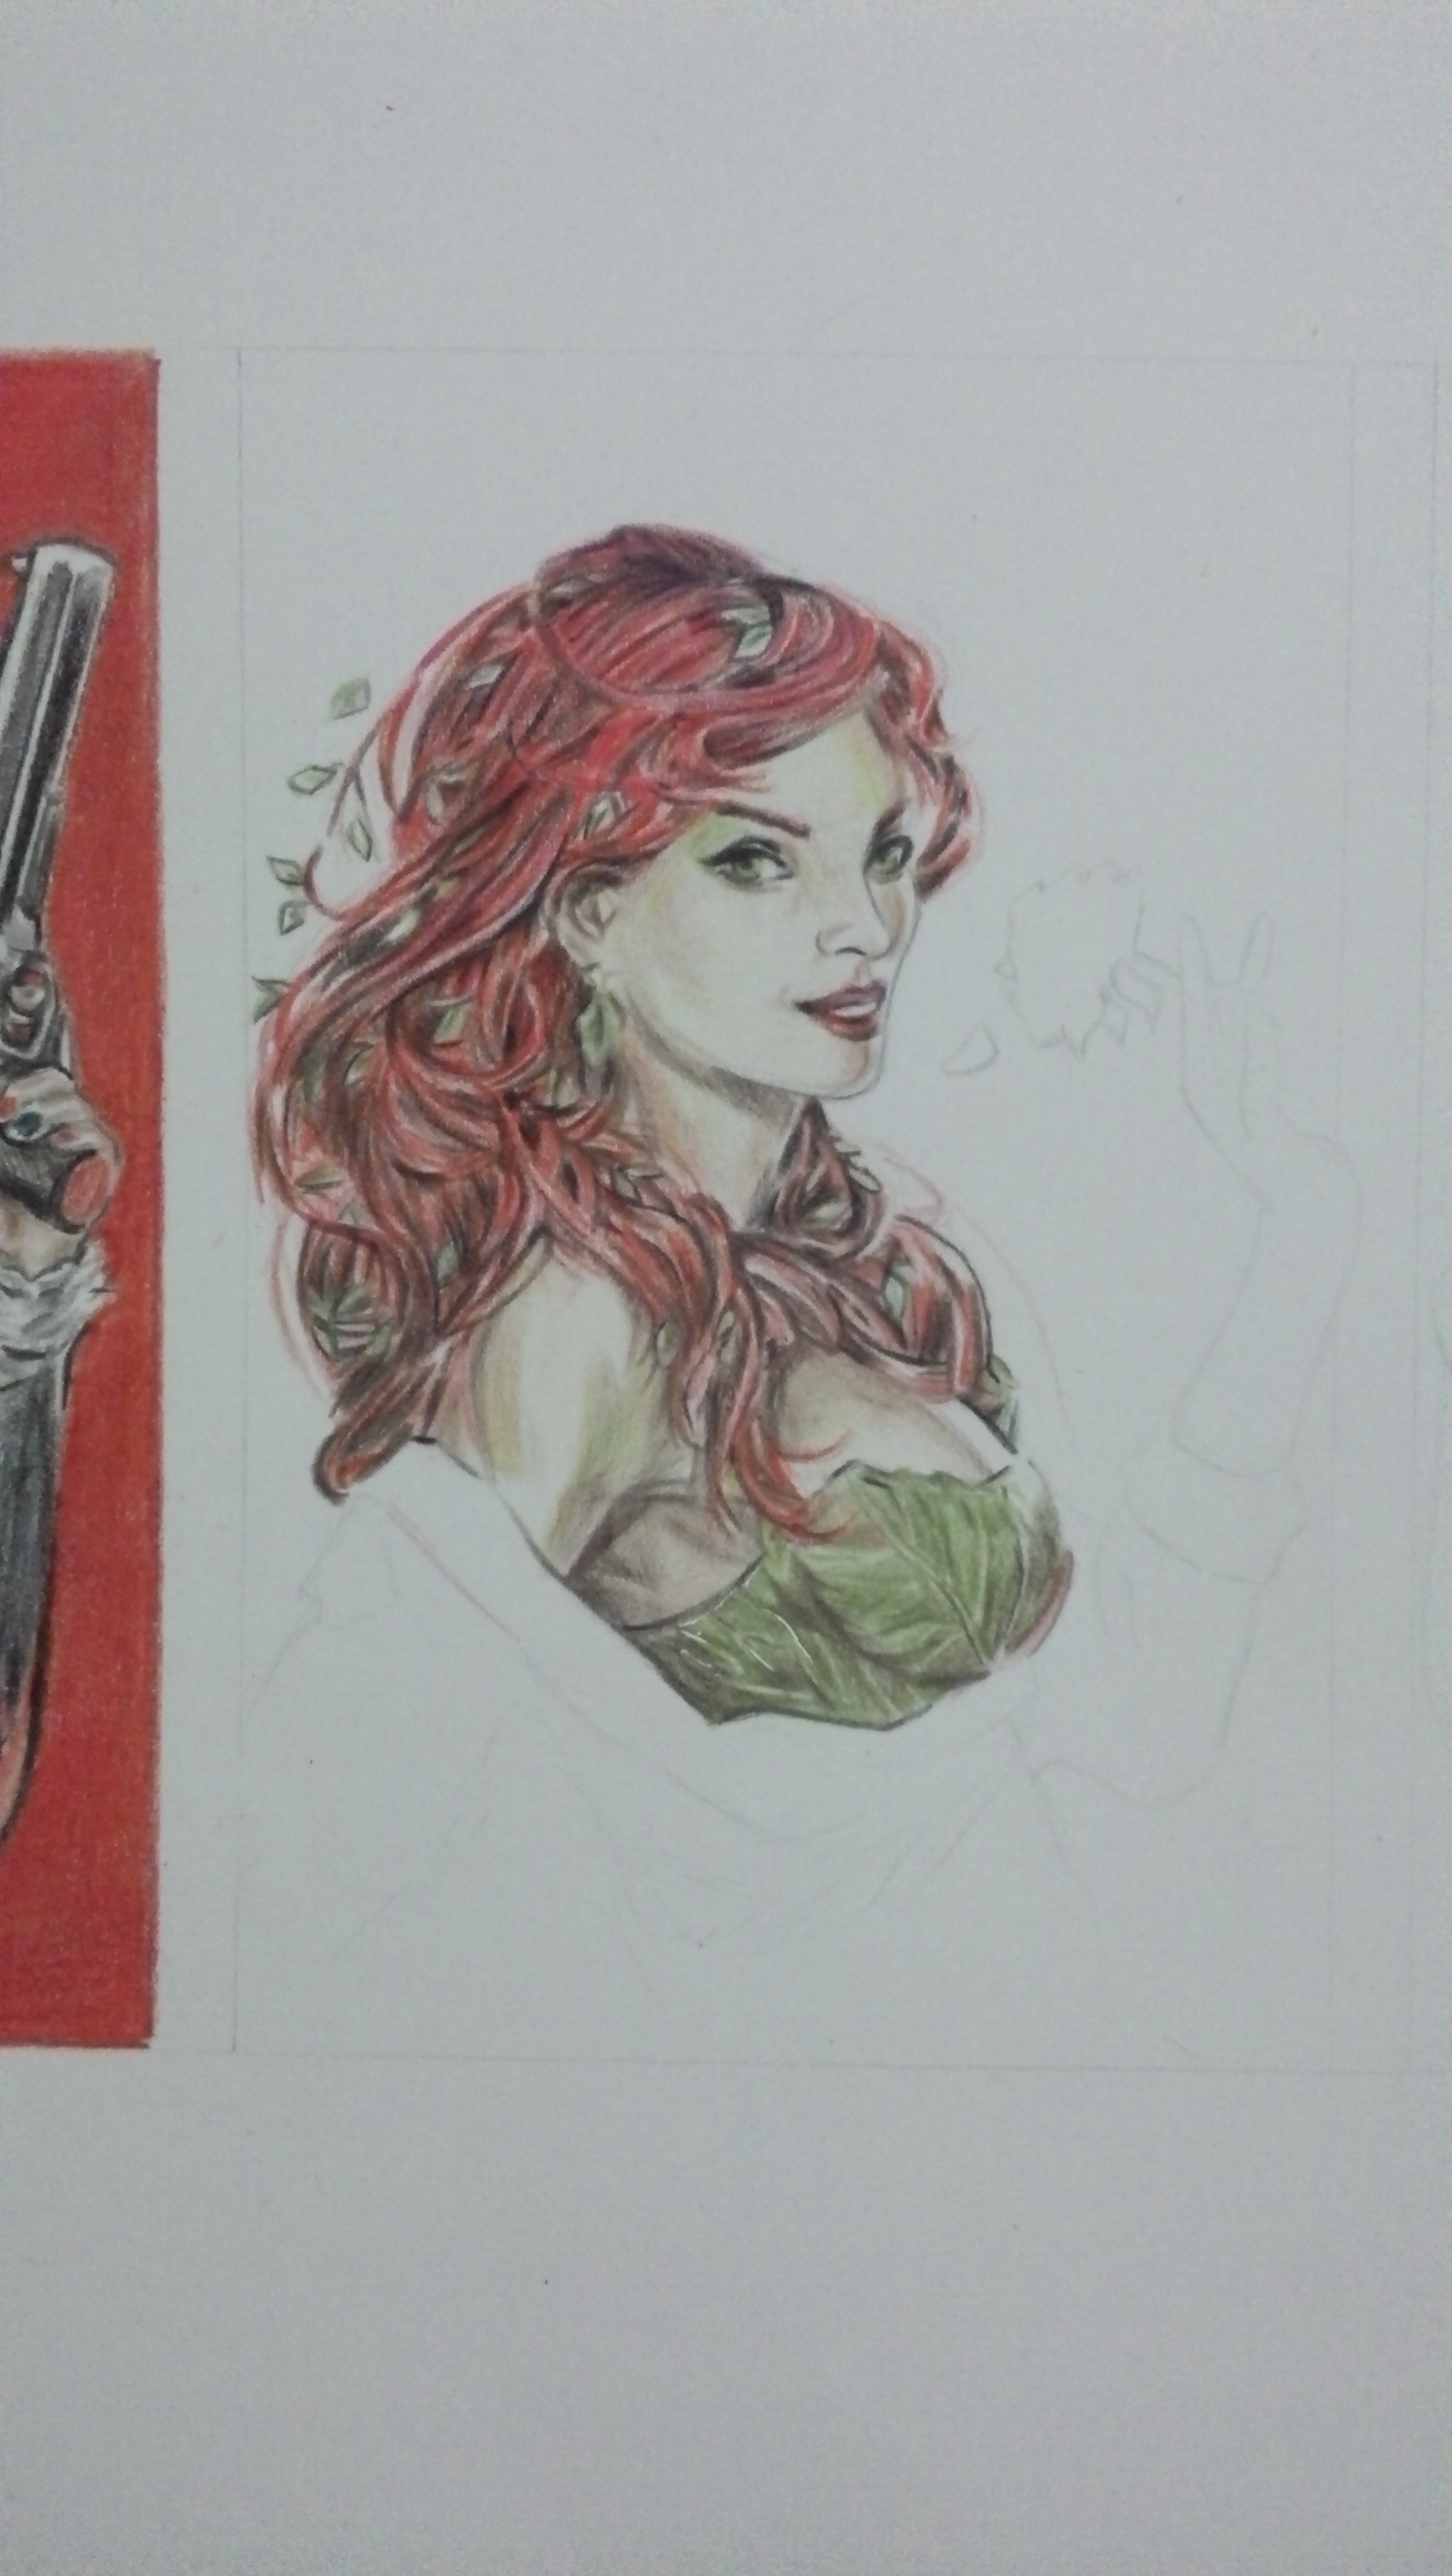 Dibujo de Harley Quinn, Poison Ivy, Catwoman